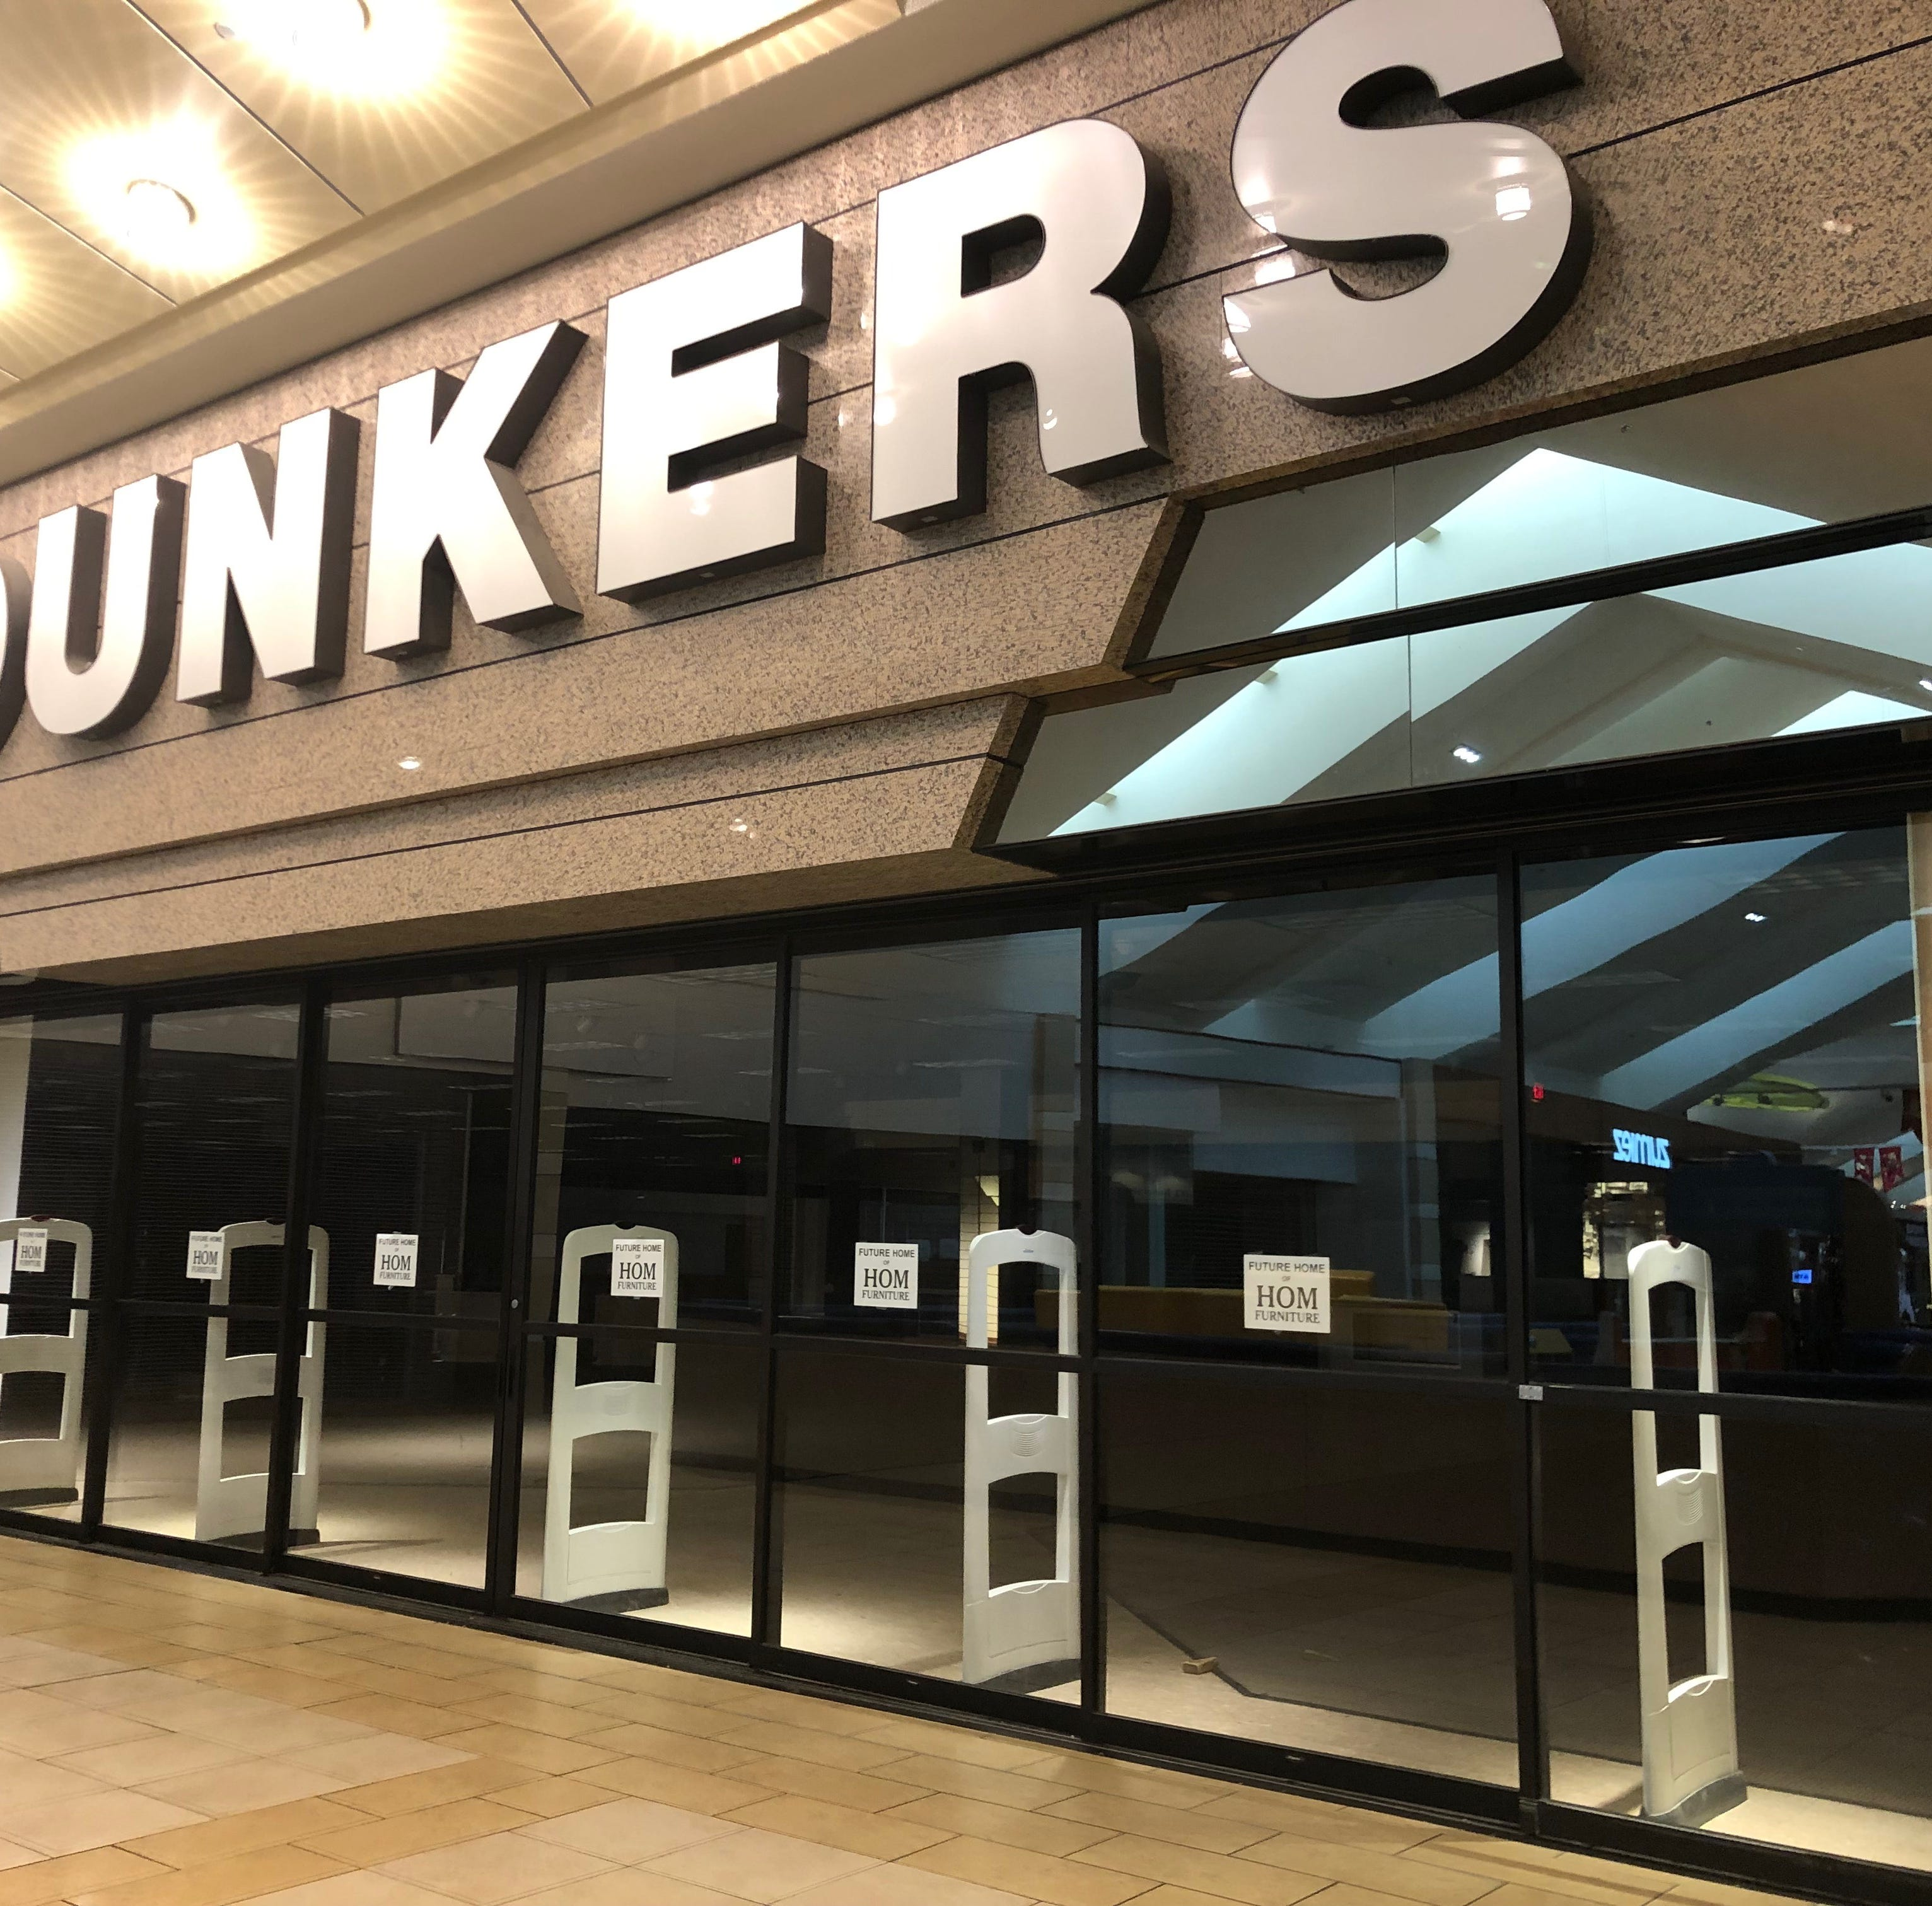 HOM Furniture set to inhabit former Younkers location in Wausau Center mall